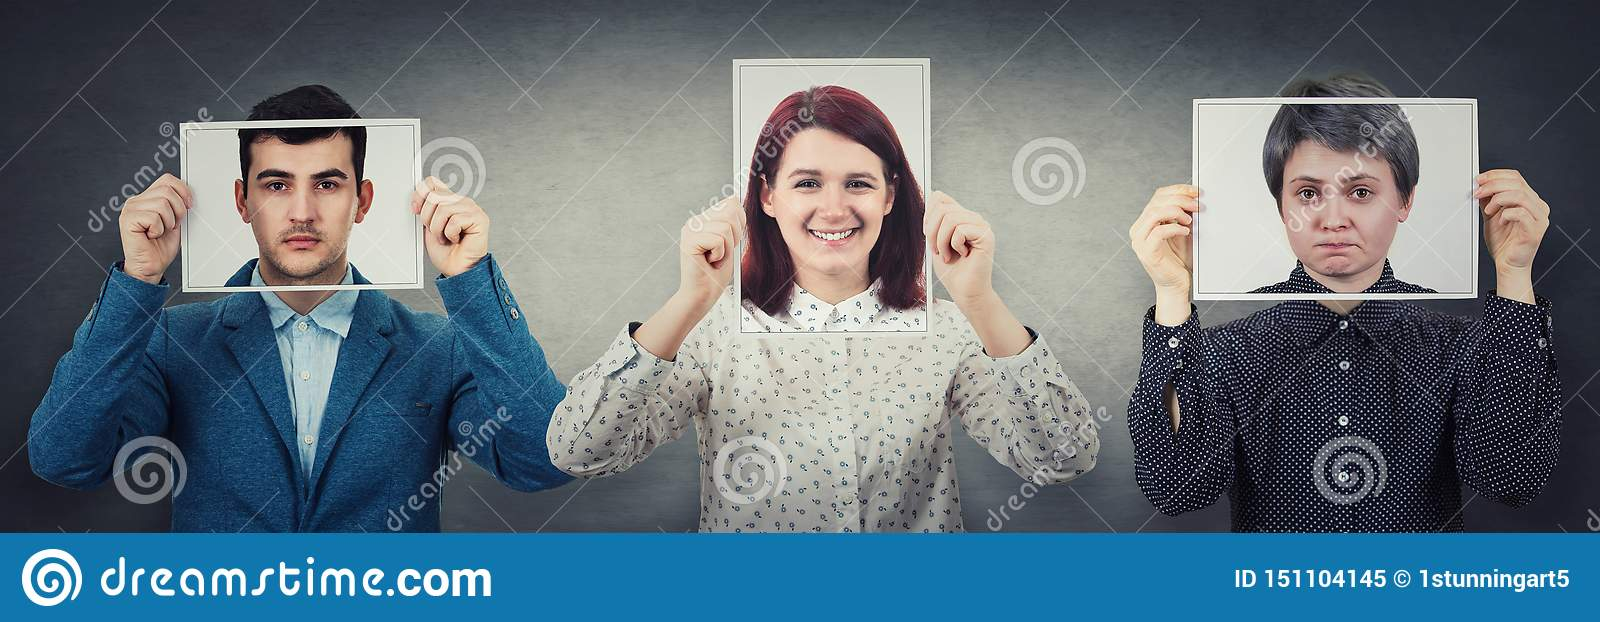 Tree people covering their faces using photo sheets with happy, sad and neutral emotions, like mask to hide real expression from